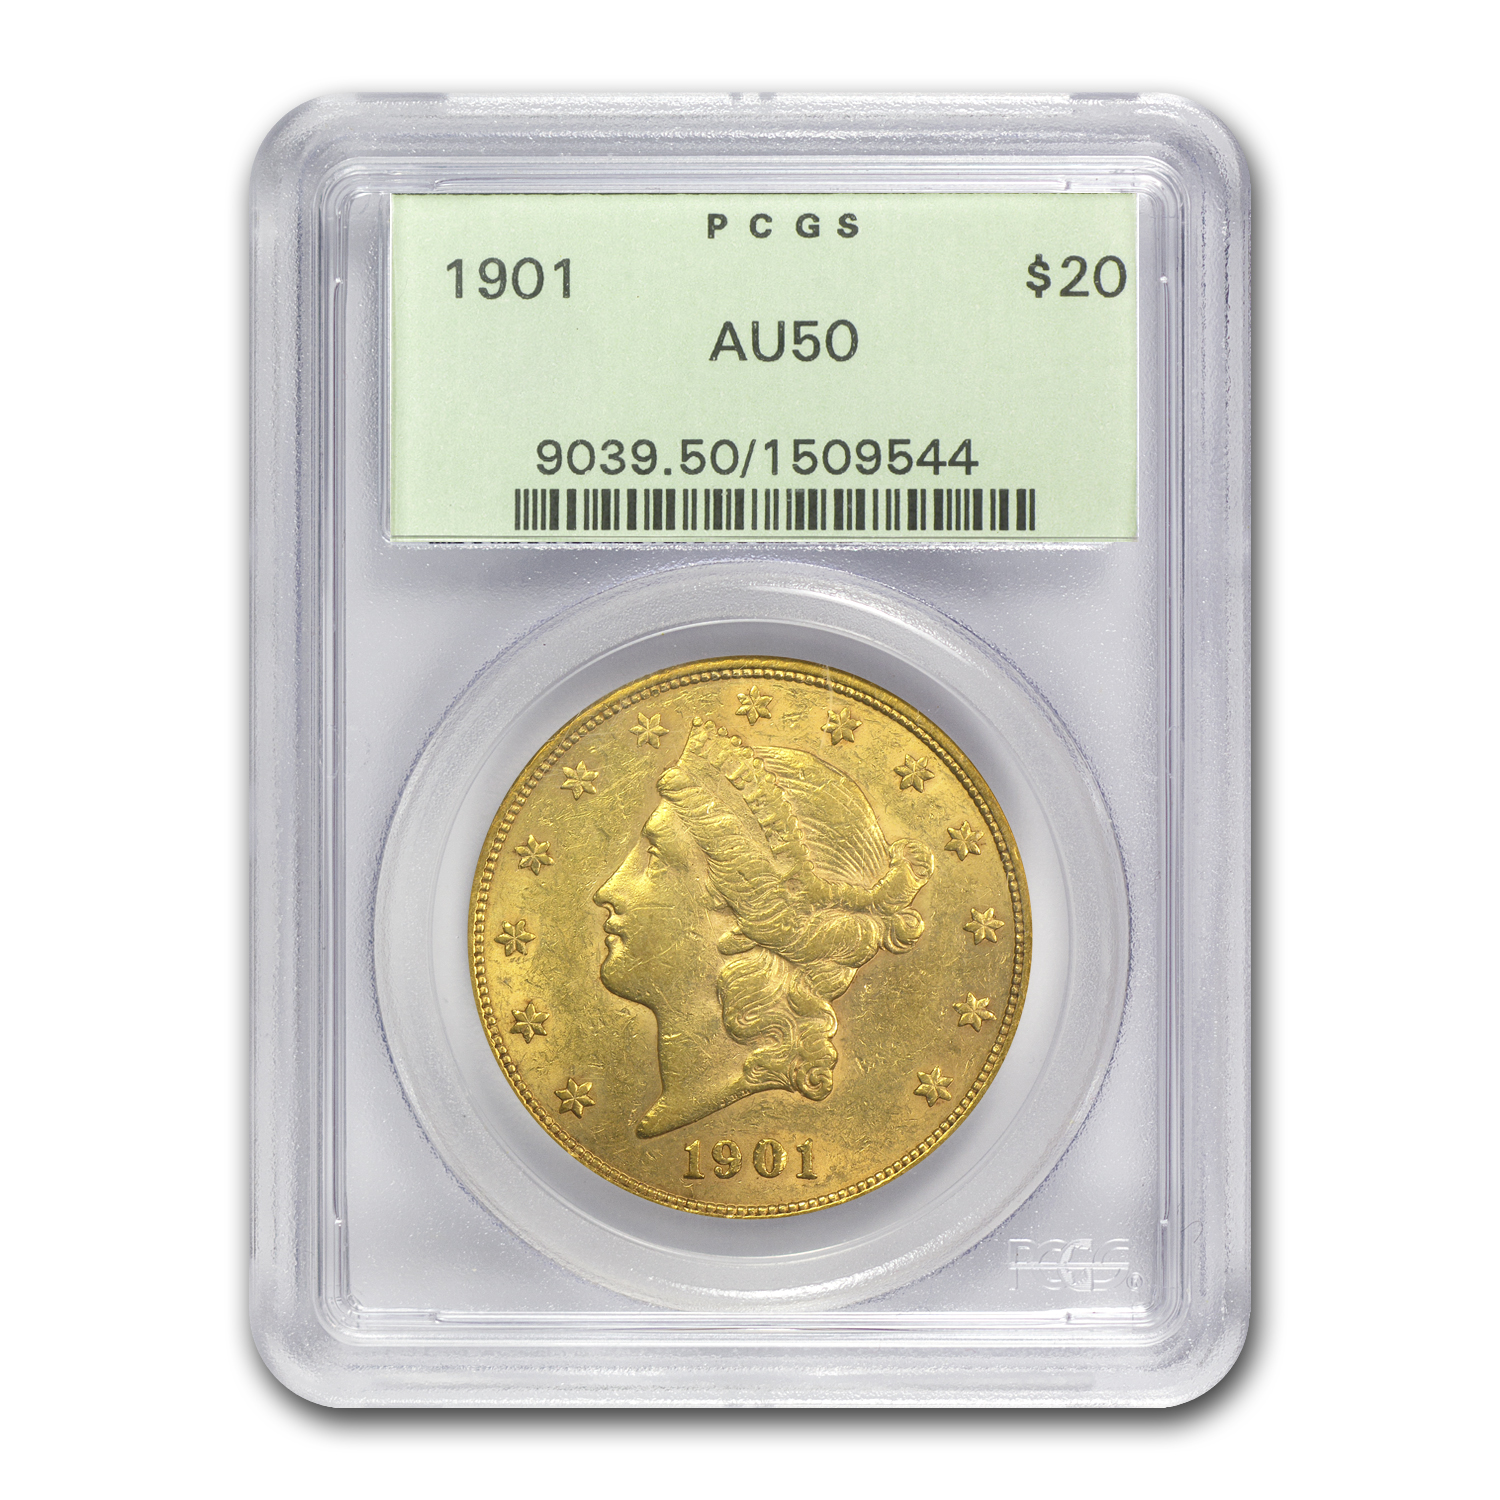 1901 $20 Liberty Gold Double Eagle AU-50 PCGS